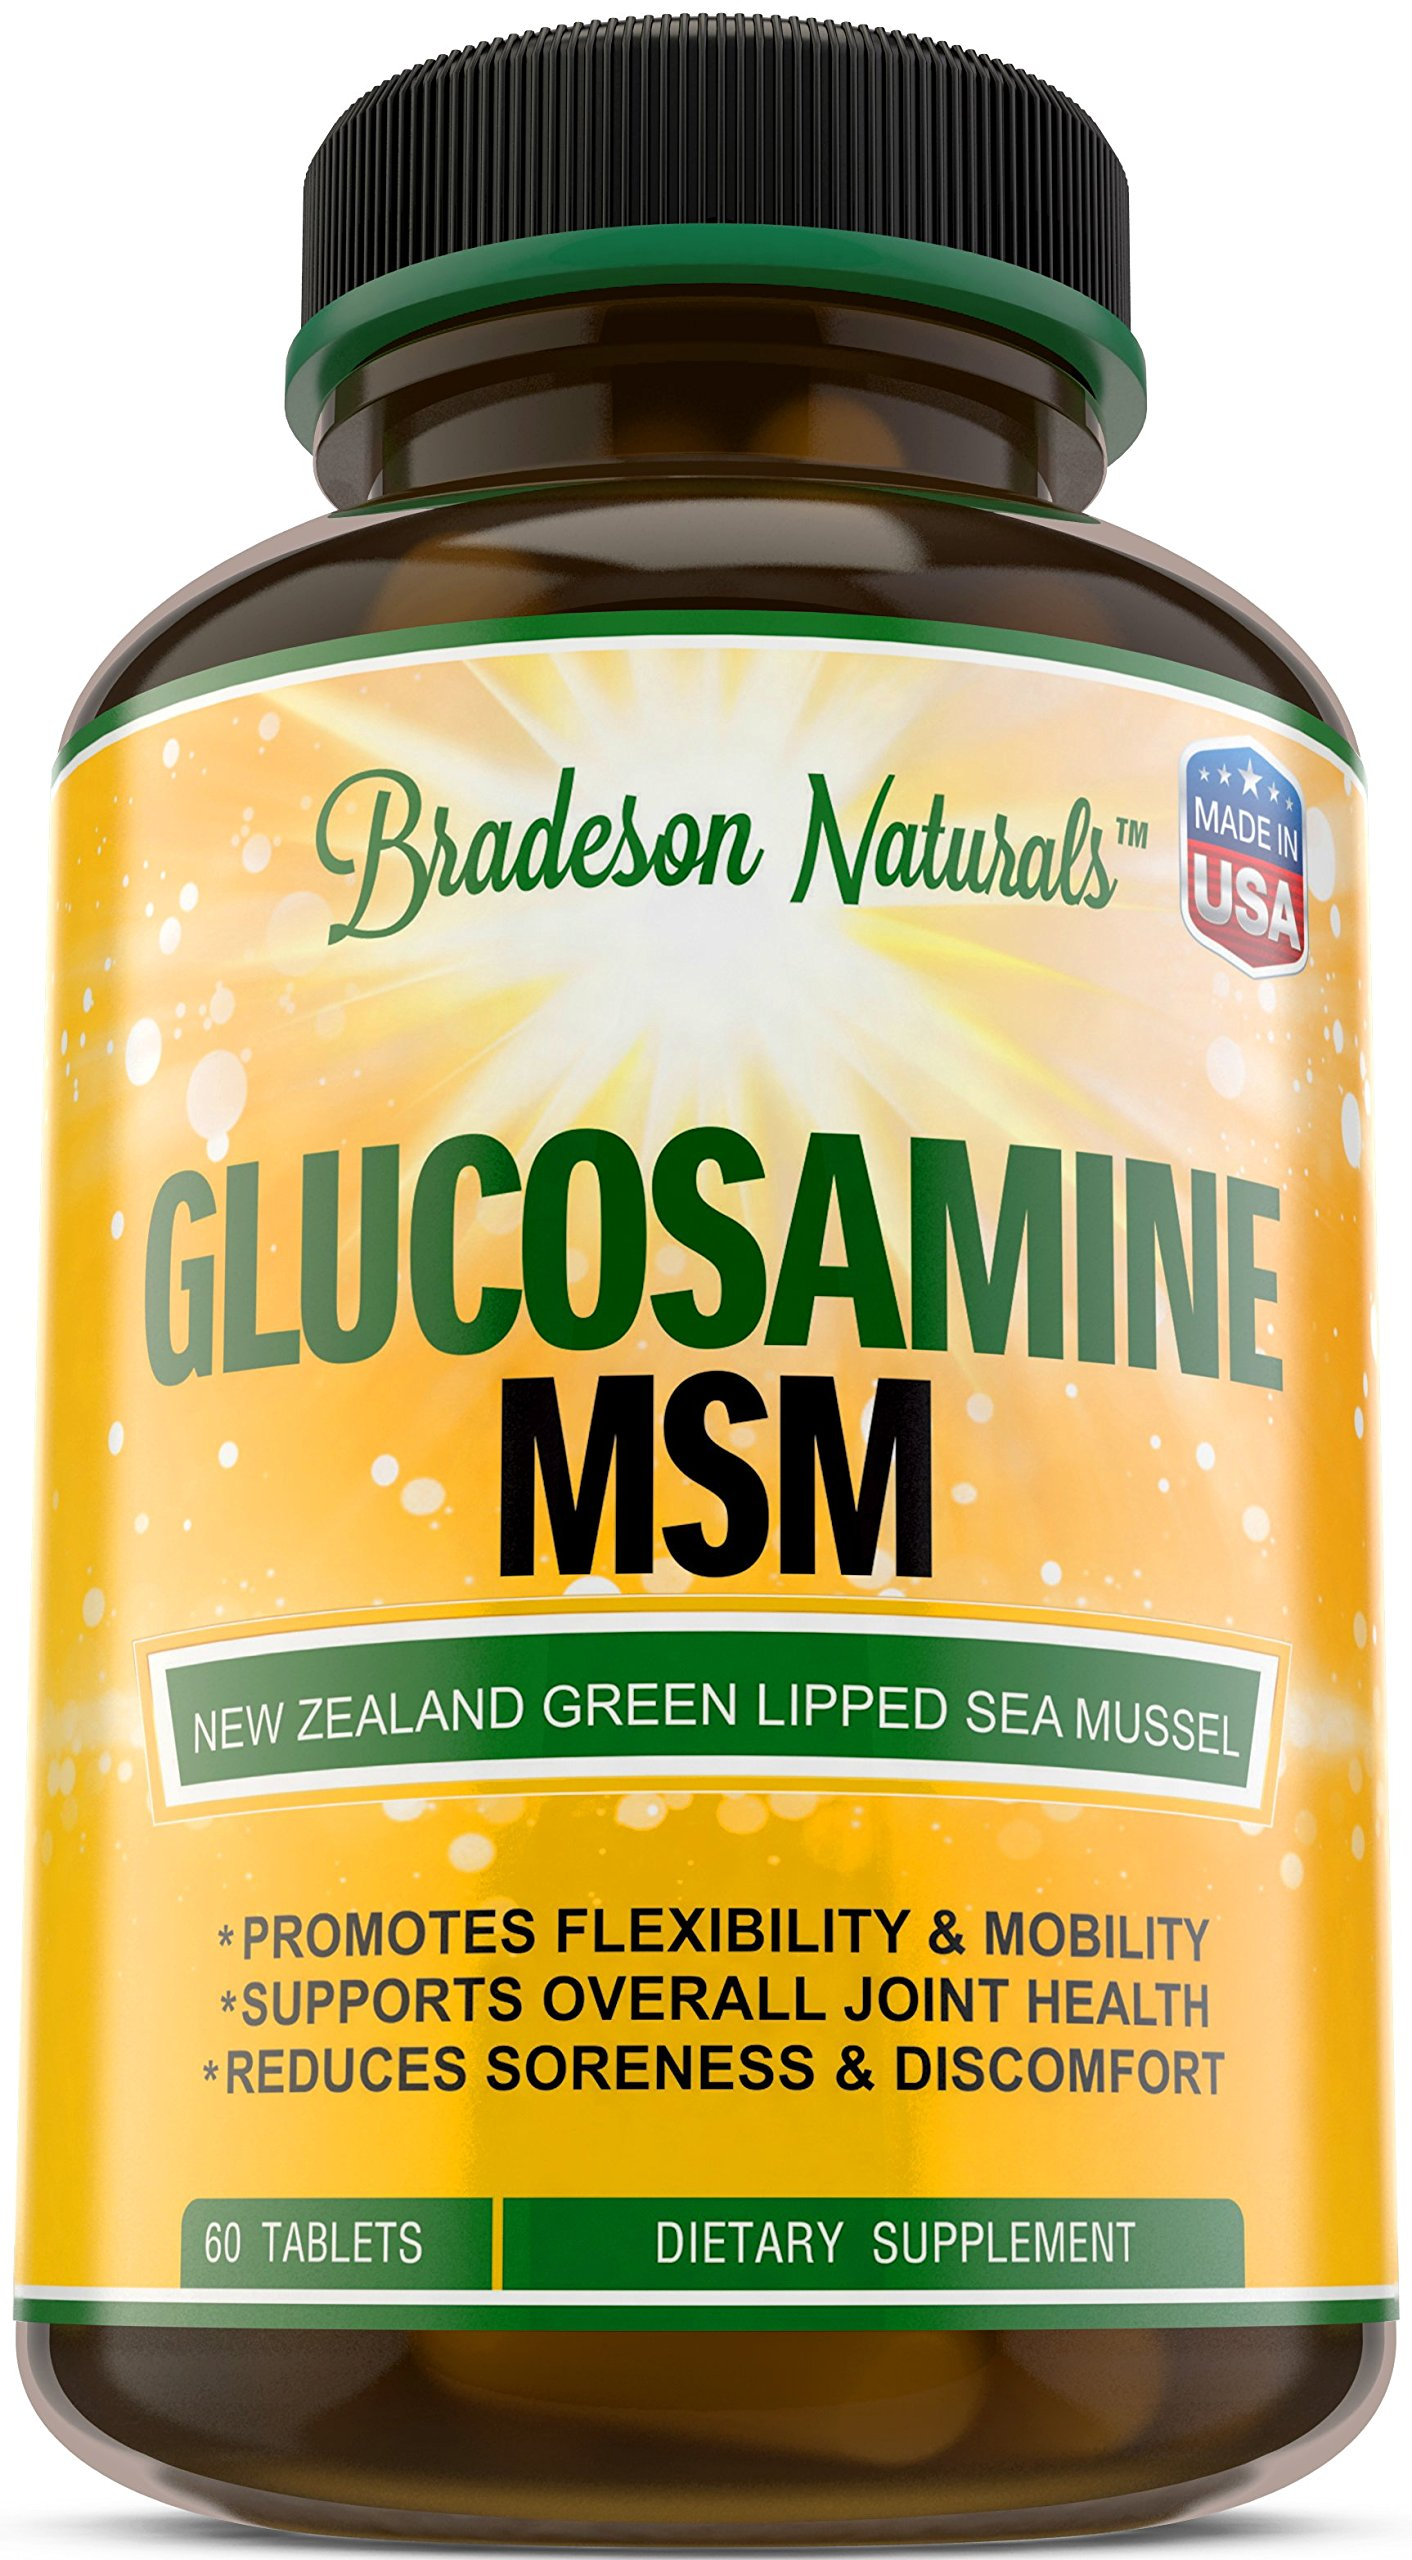 Glucosamine & MSM - 60 Tablets - Joint Support Supplement: Green Lipped Sea Mussel, Chondroitin Sulfate, Chromium, Selenium, Zinc &Vitamins A, B, C, E - Reduce Pain & Inflammation